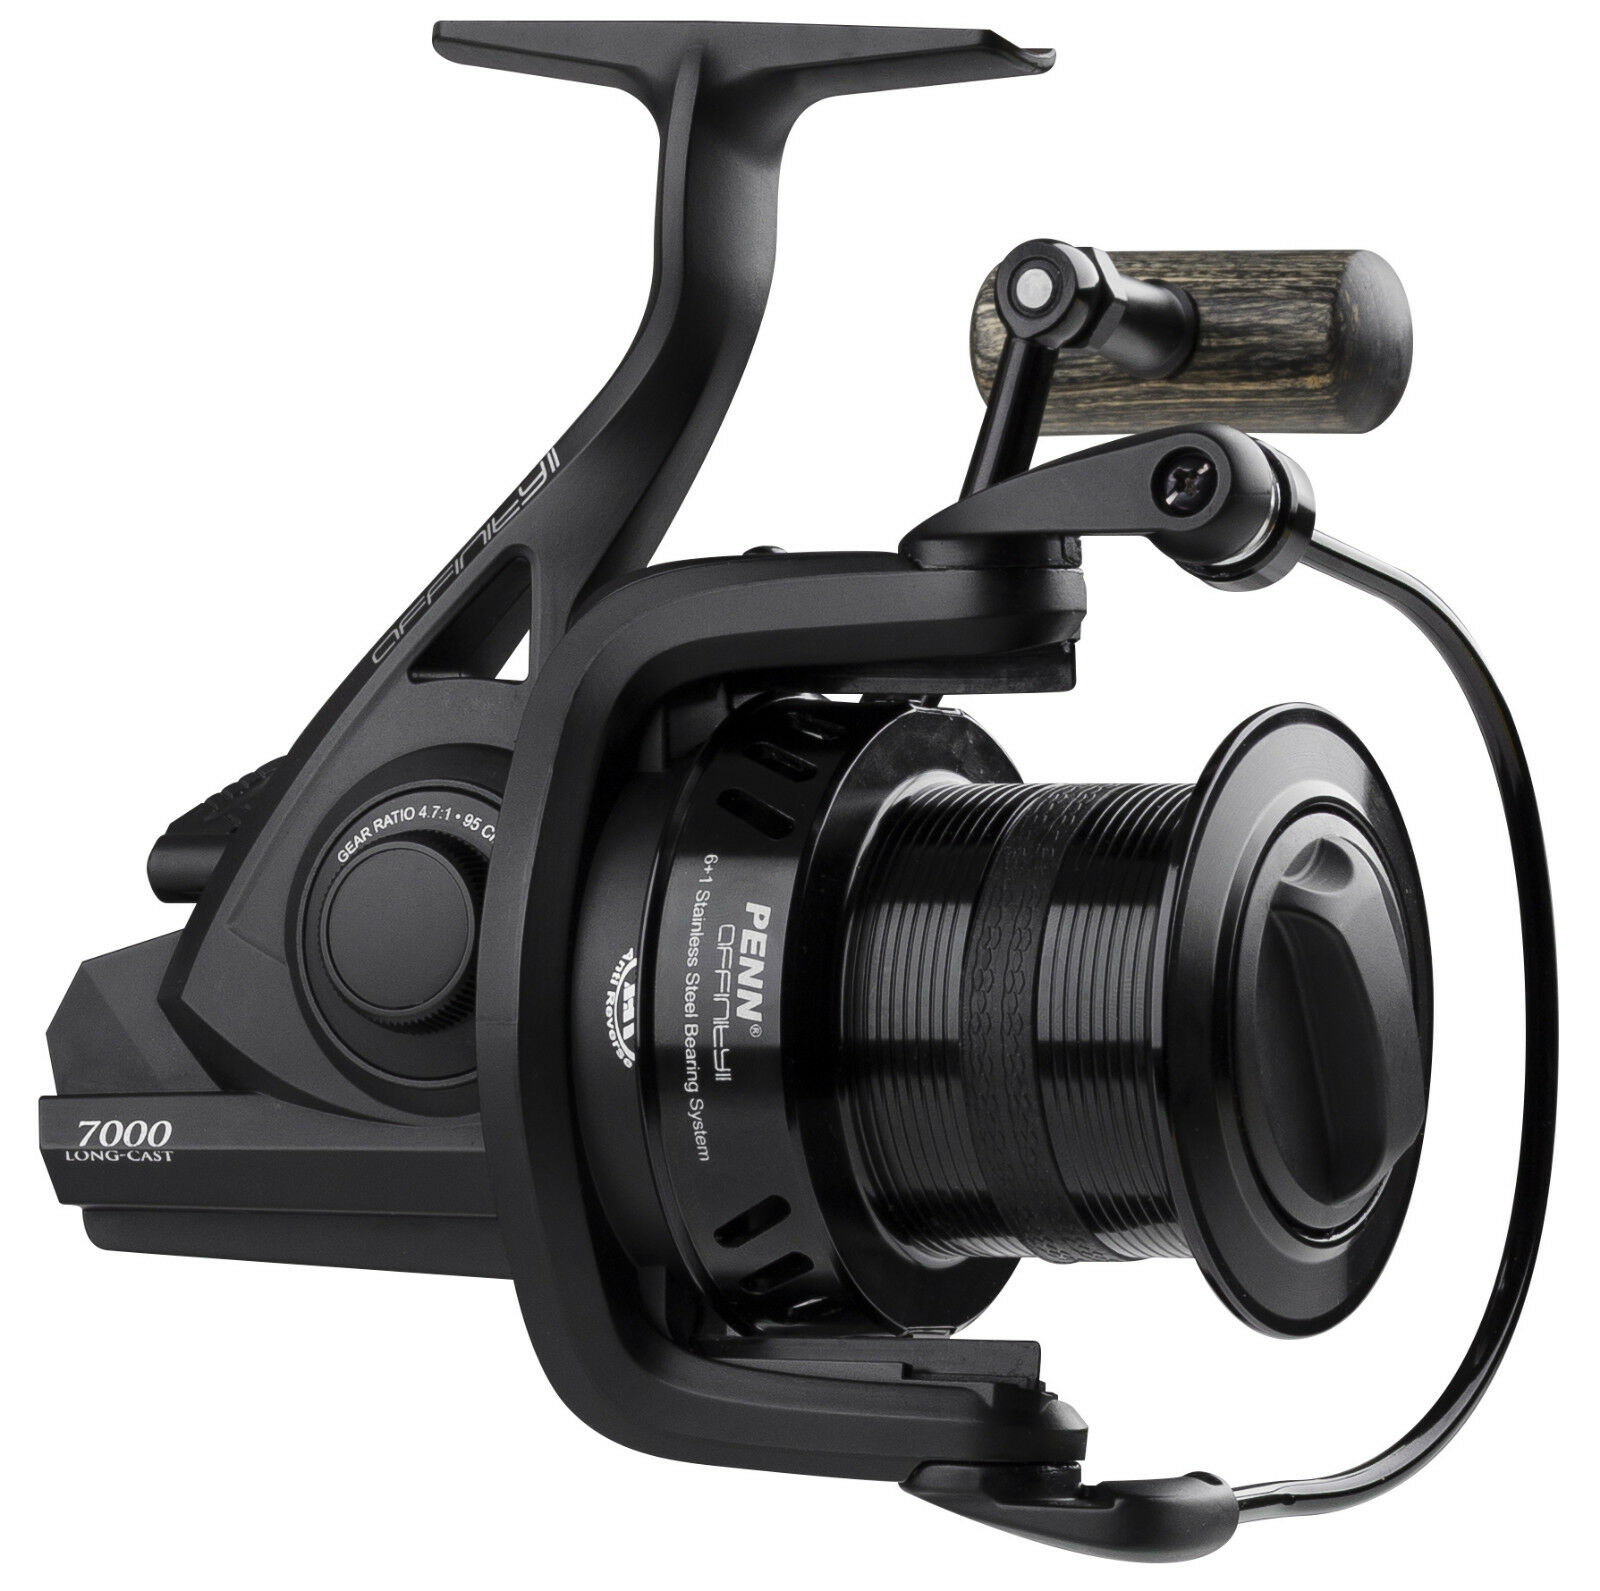 Set of   2 pcs PENN AFFINITY II 7000 LC - Surfcasting   Big Pit   Carp Reel  all in high quality and low price